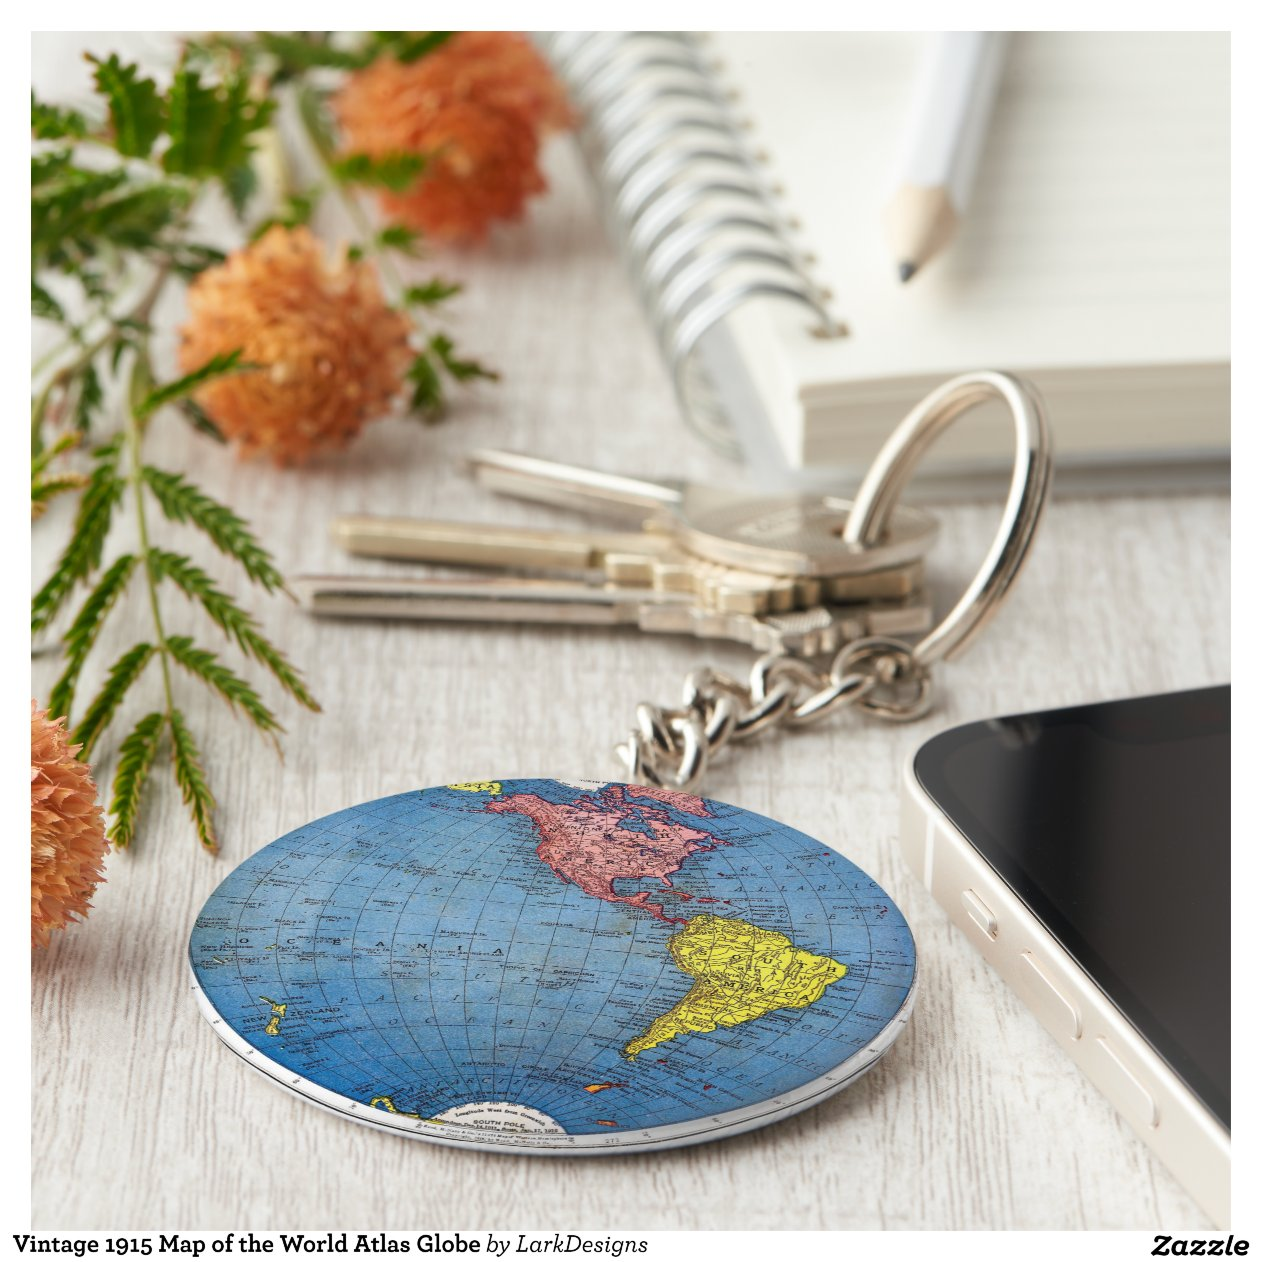 Globe map of the world with labels 2018 images pictures world vintage 1915 map of the world globe map of the world with labels gumiabroncs Images